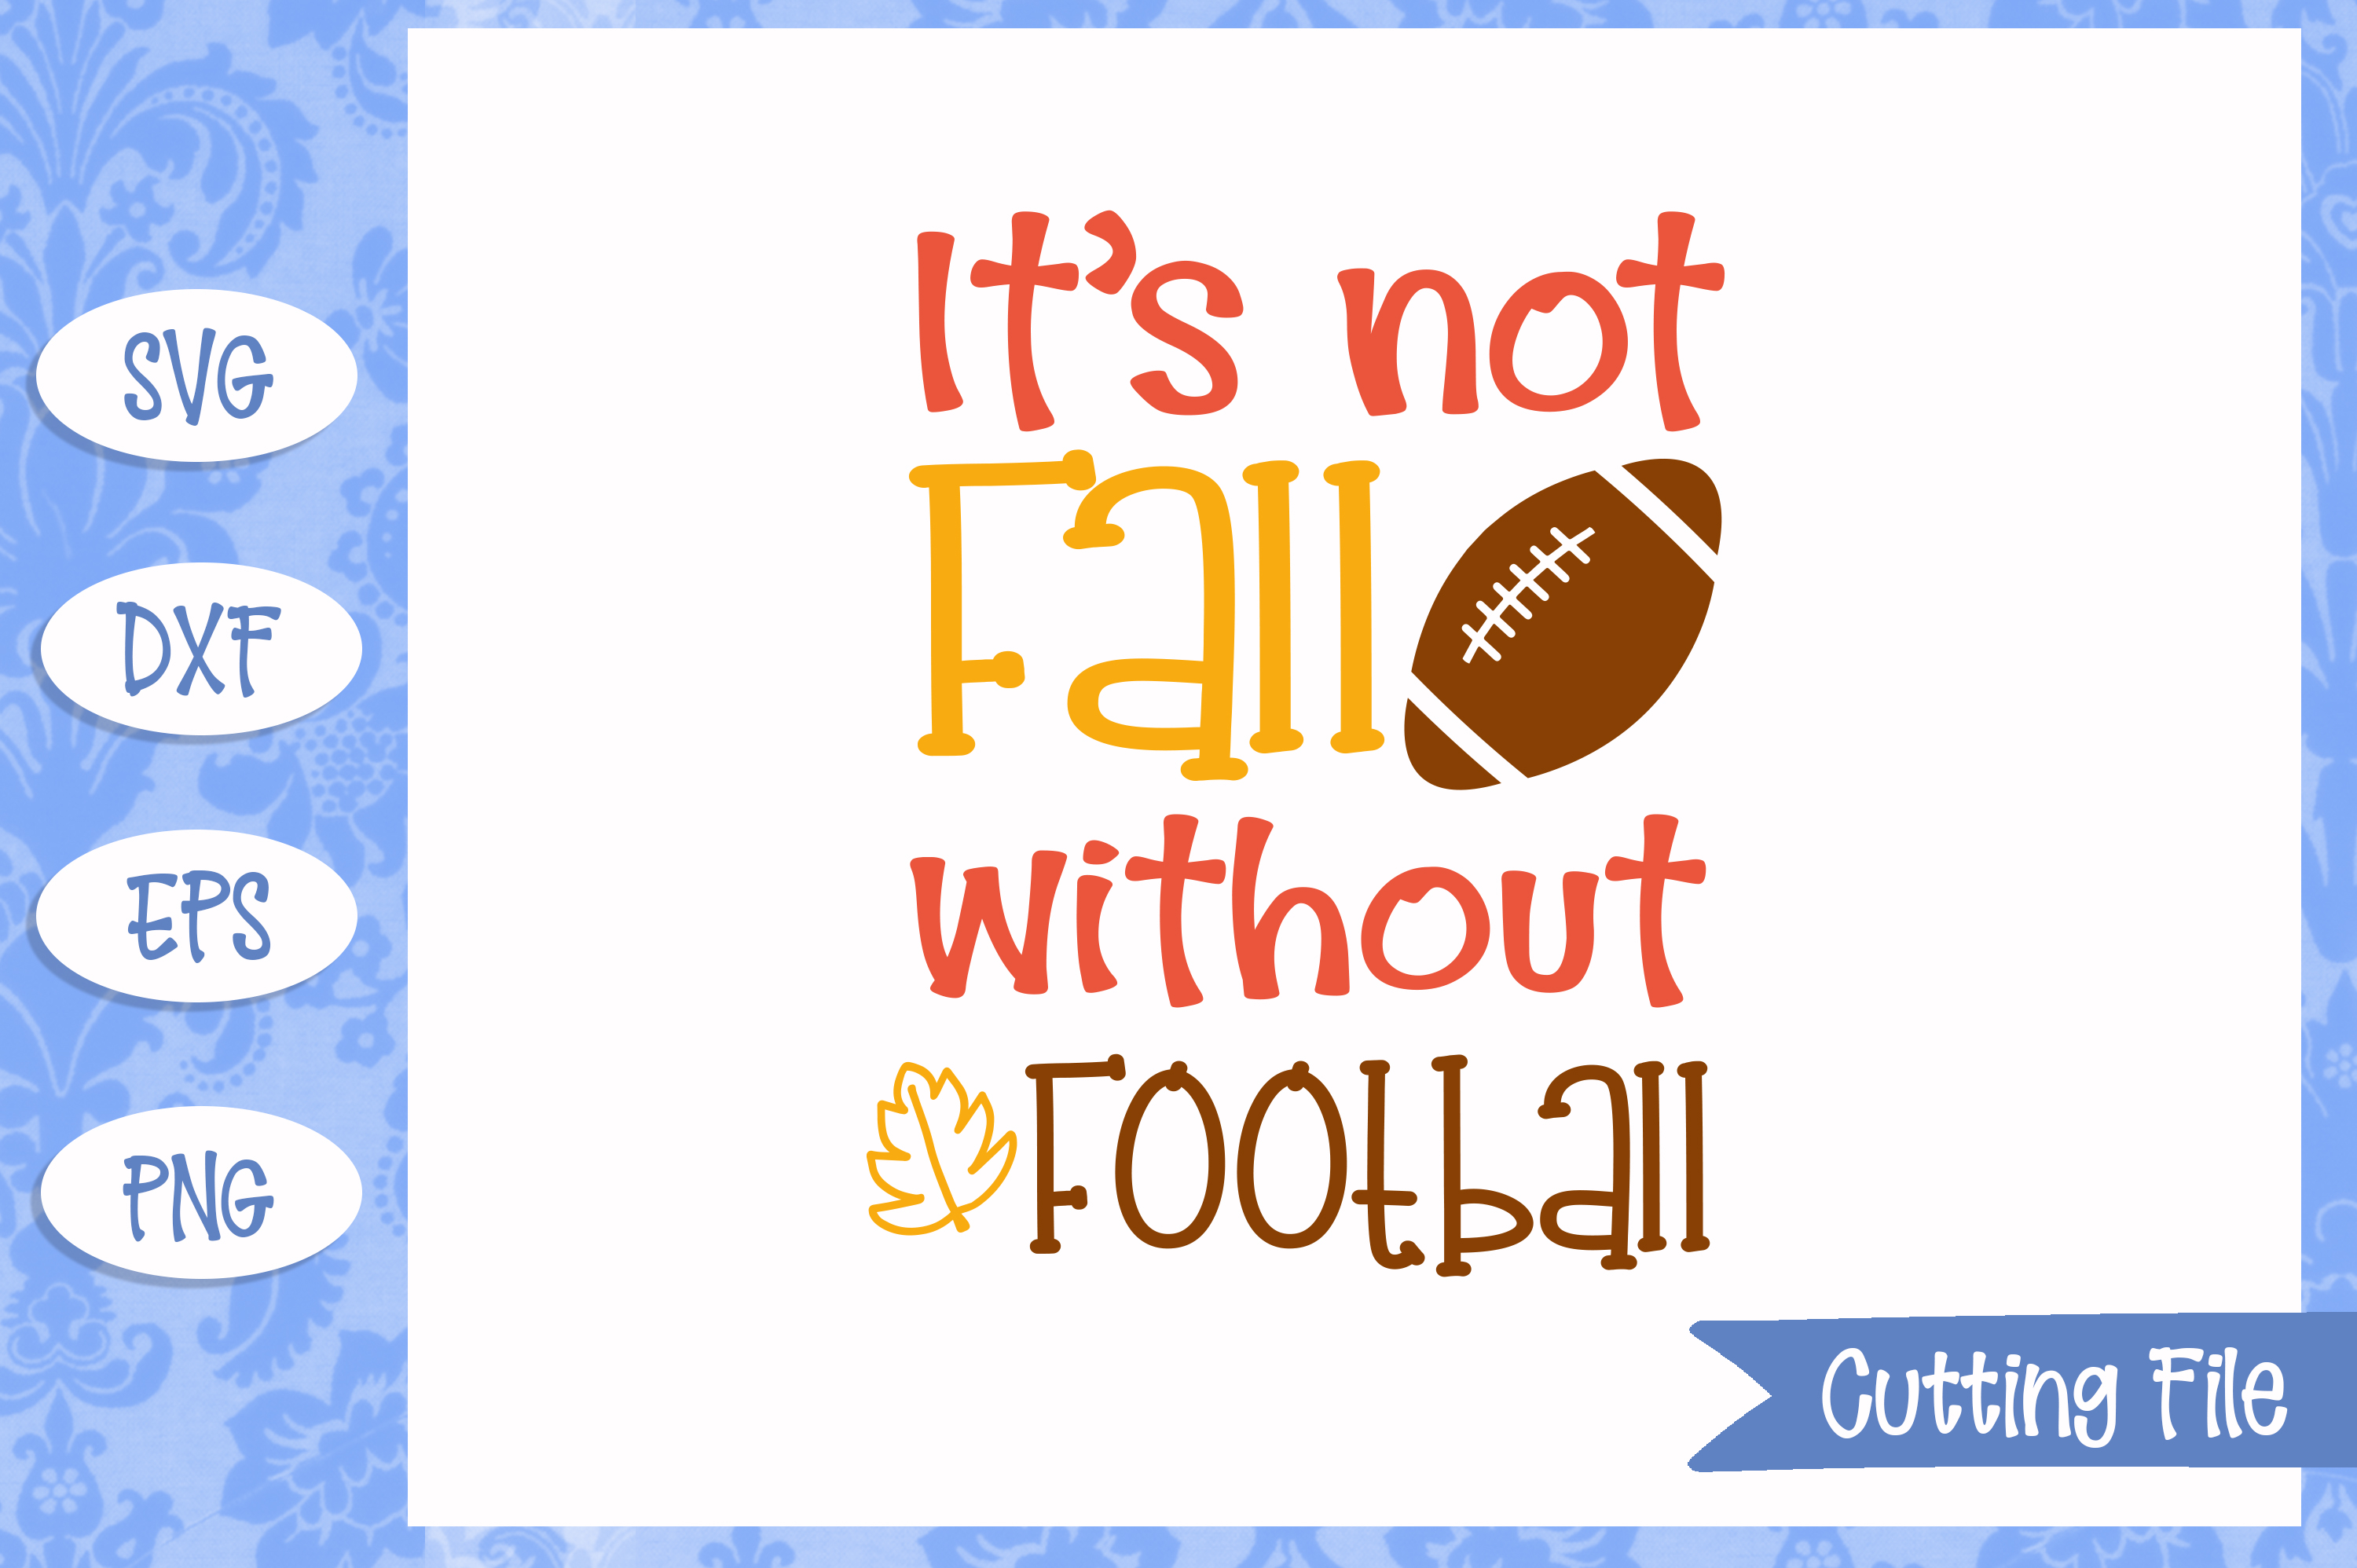 It's not fall without football Cut File example image 1